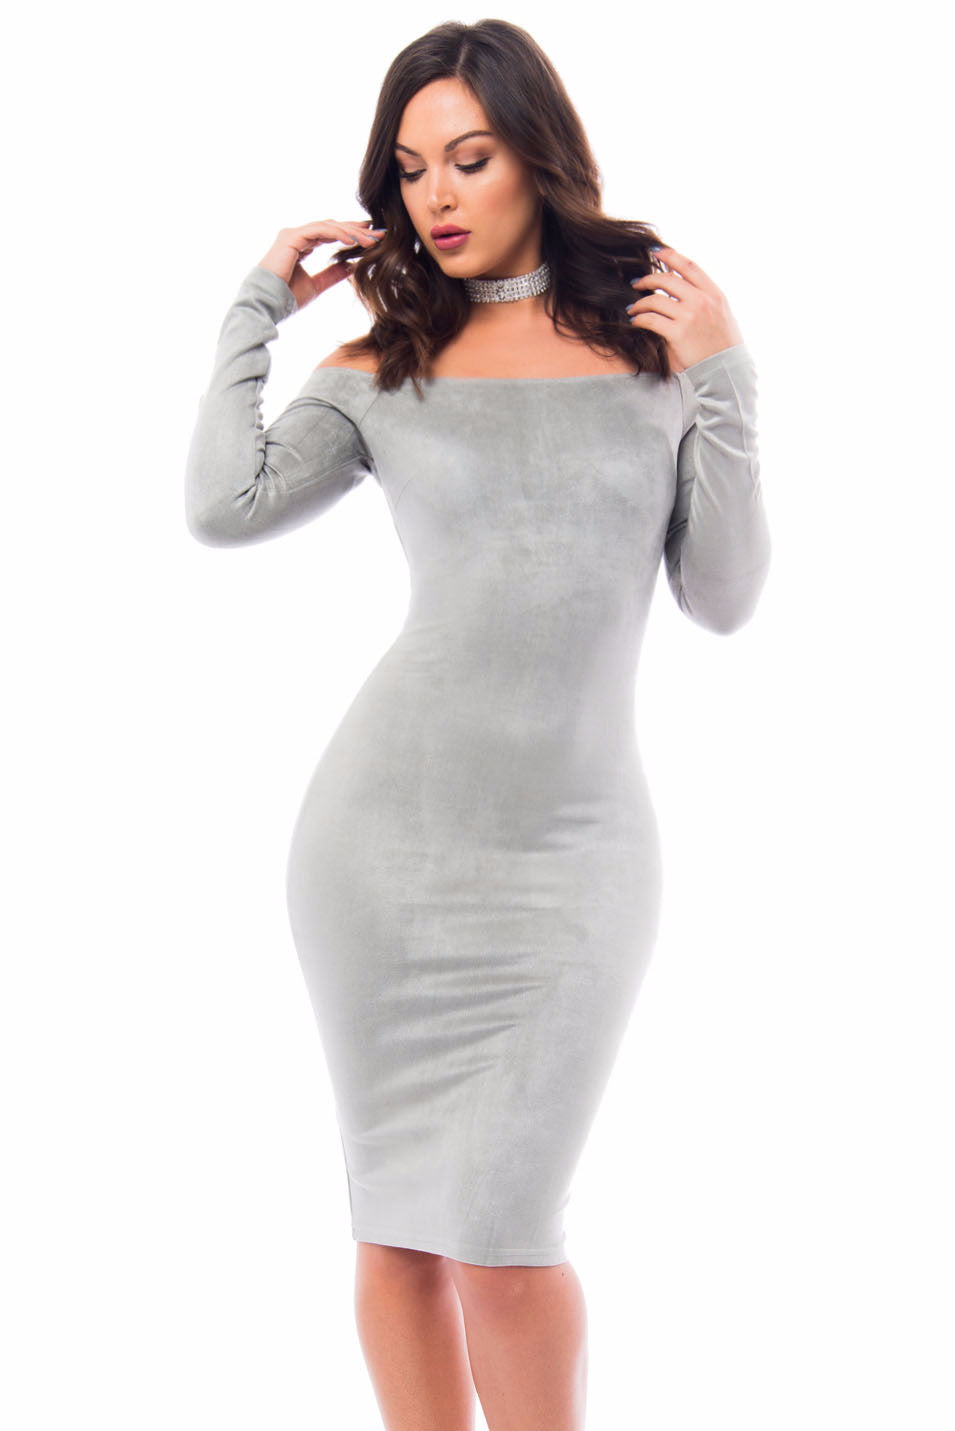 Silver Lining Suede Dress - Fashion Effect Store  - 1